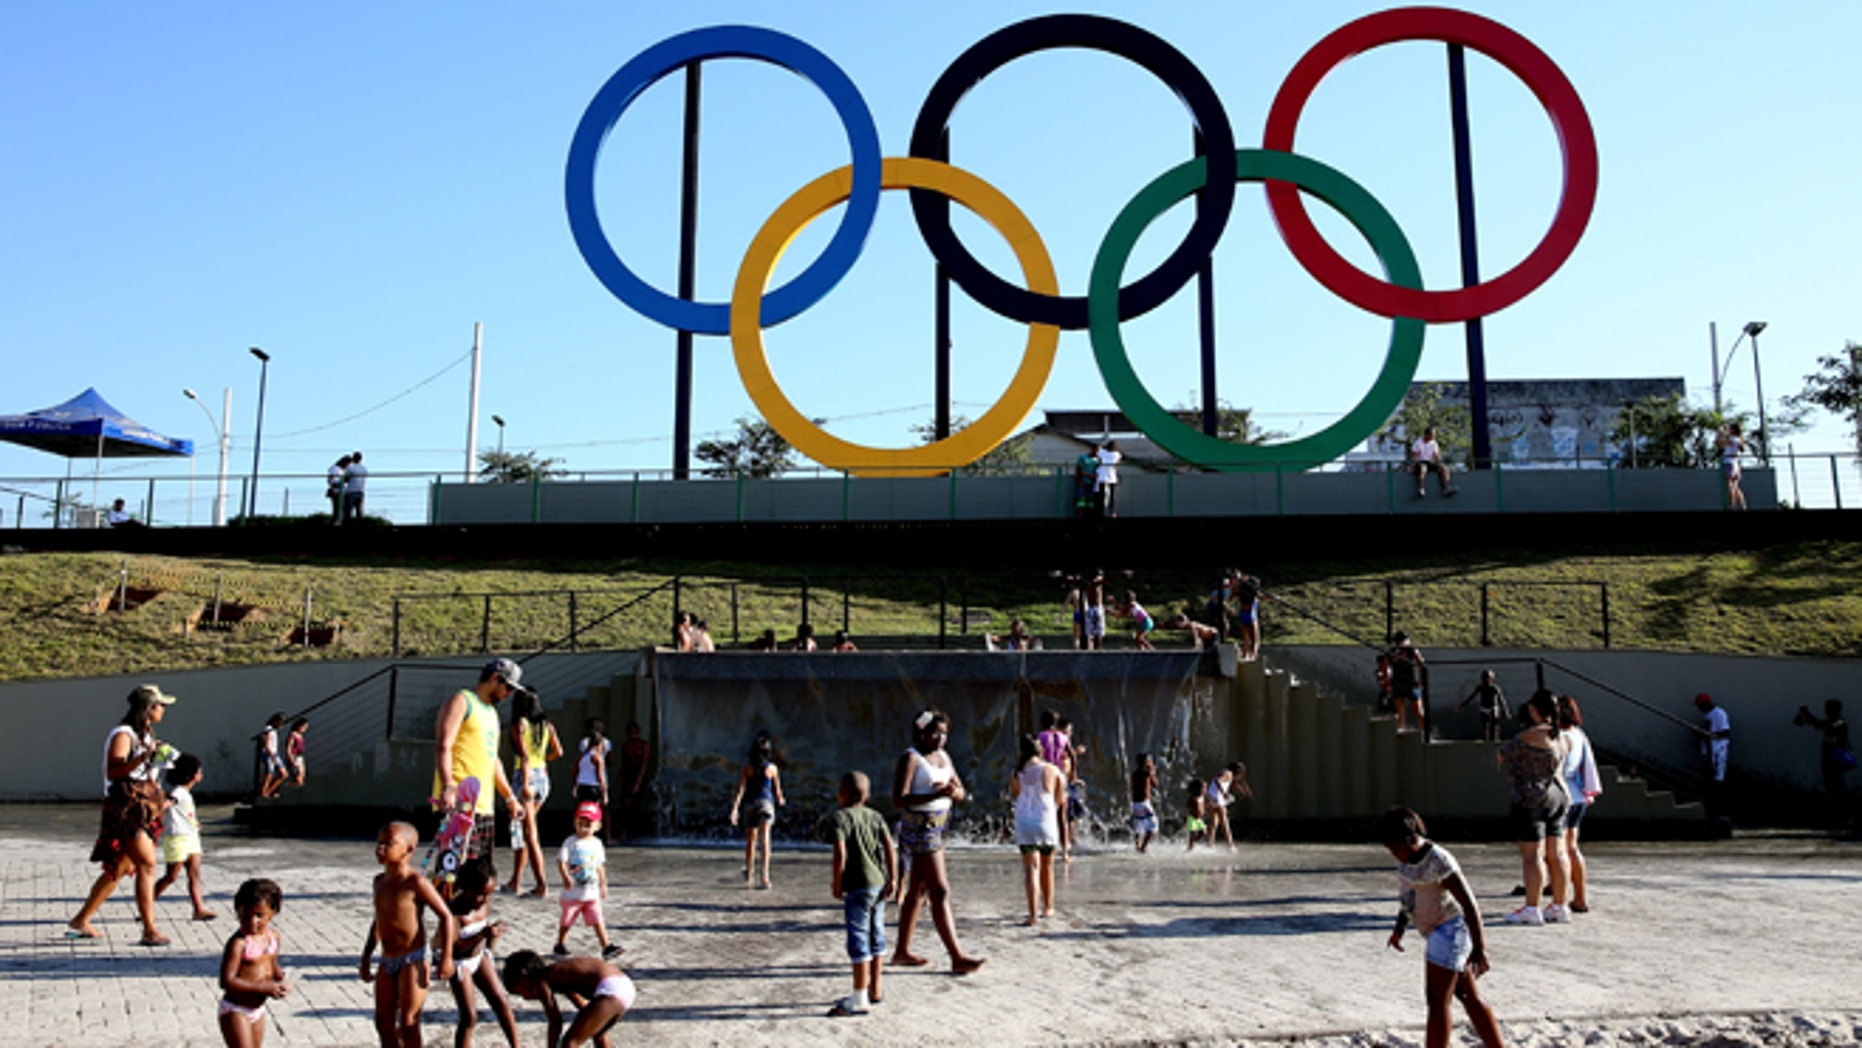 The Olympic Rings rise above Madureira Park on June 4, 2015 in Rio de Janeiro, Brazil.